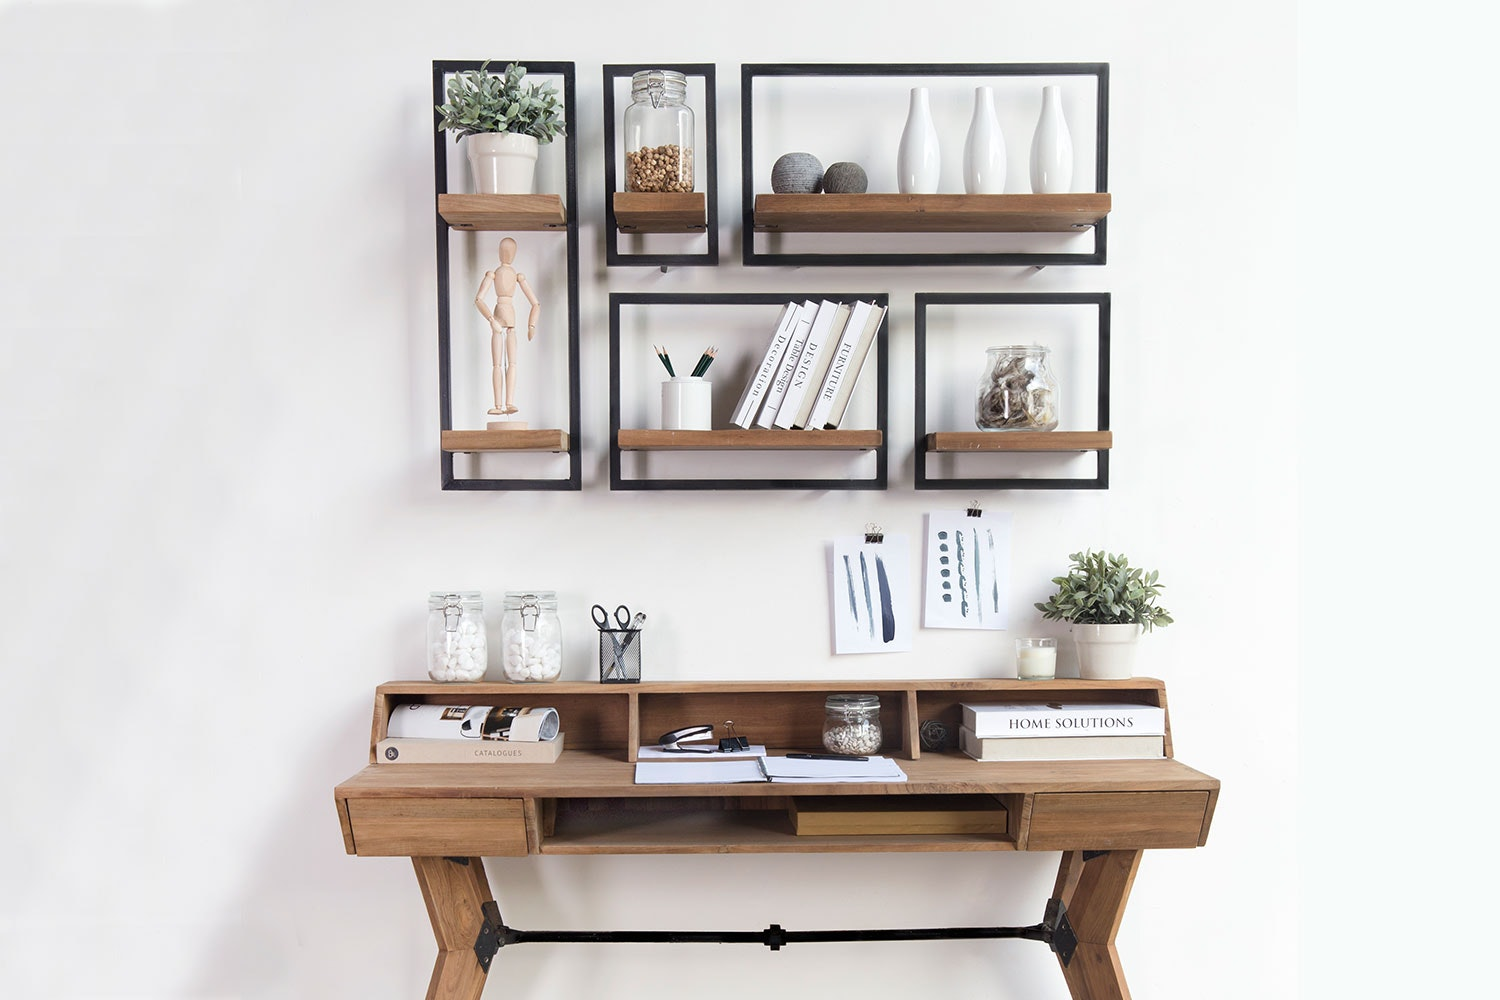 Shelfmate Matching Shelving Unit Range by D-Bohdi